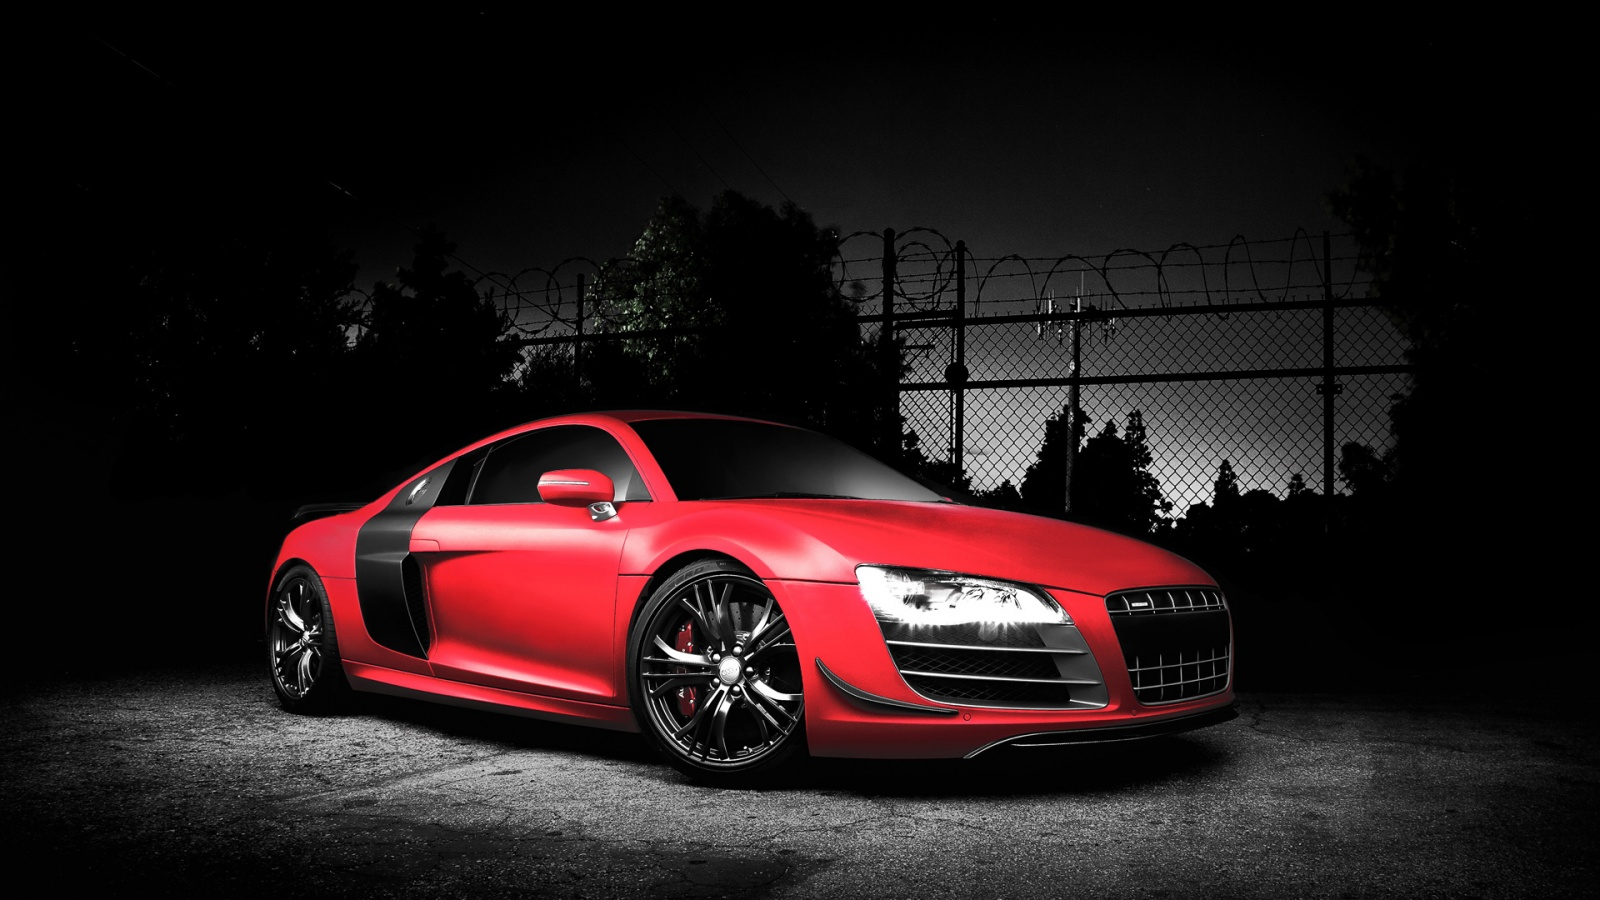 Red Audi R8 Gt Wallpapers In Jpg Format For Free Download